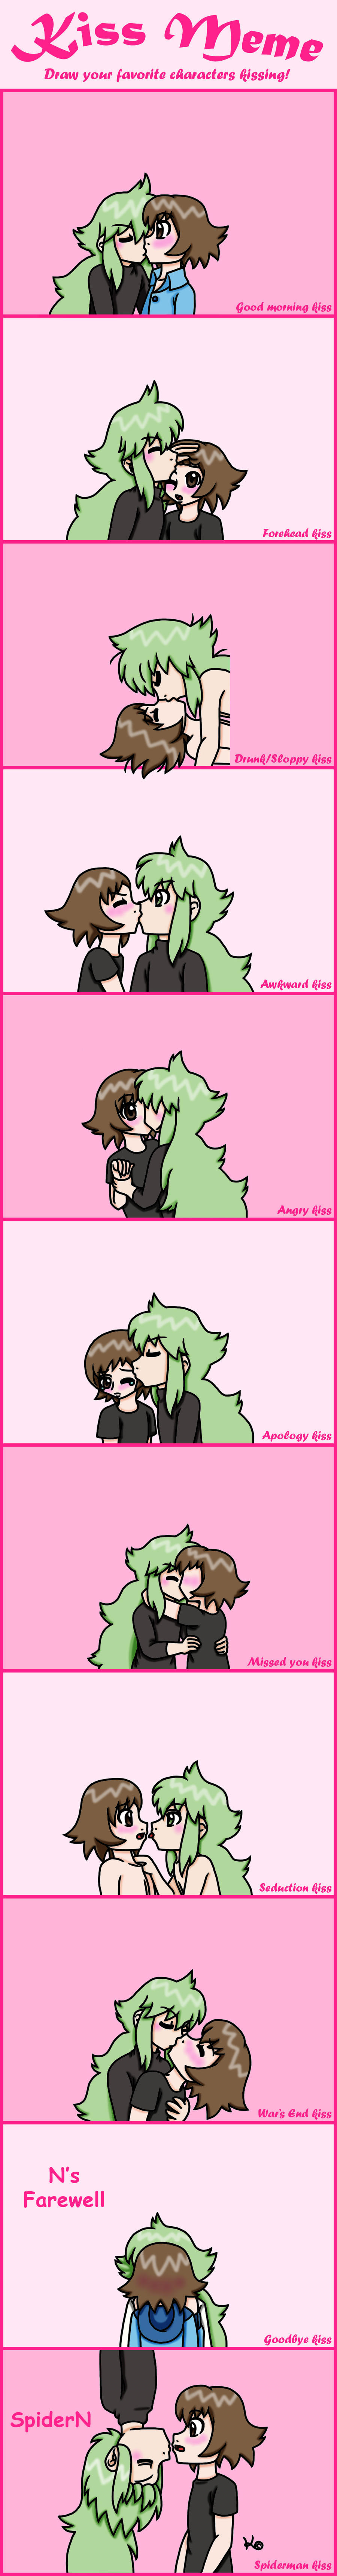 Kiss Meme - N x Hilbert by LoveTails on DeviantArt